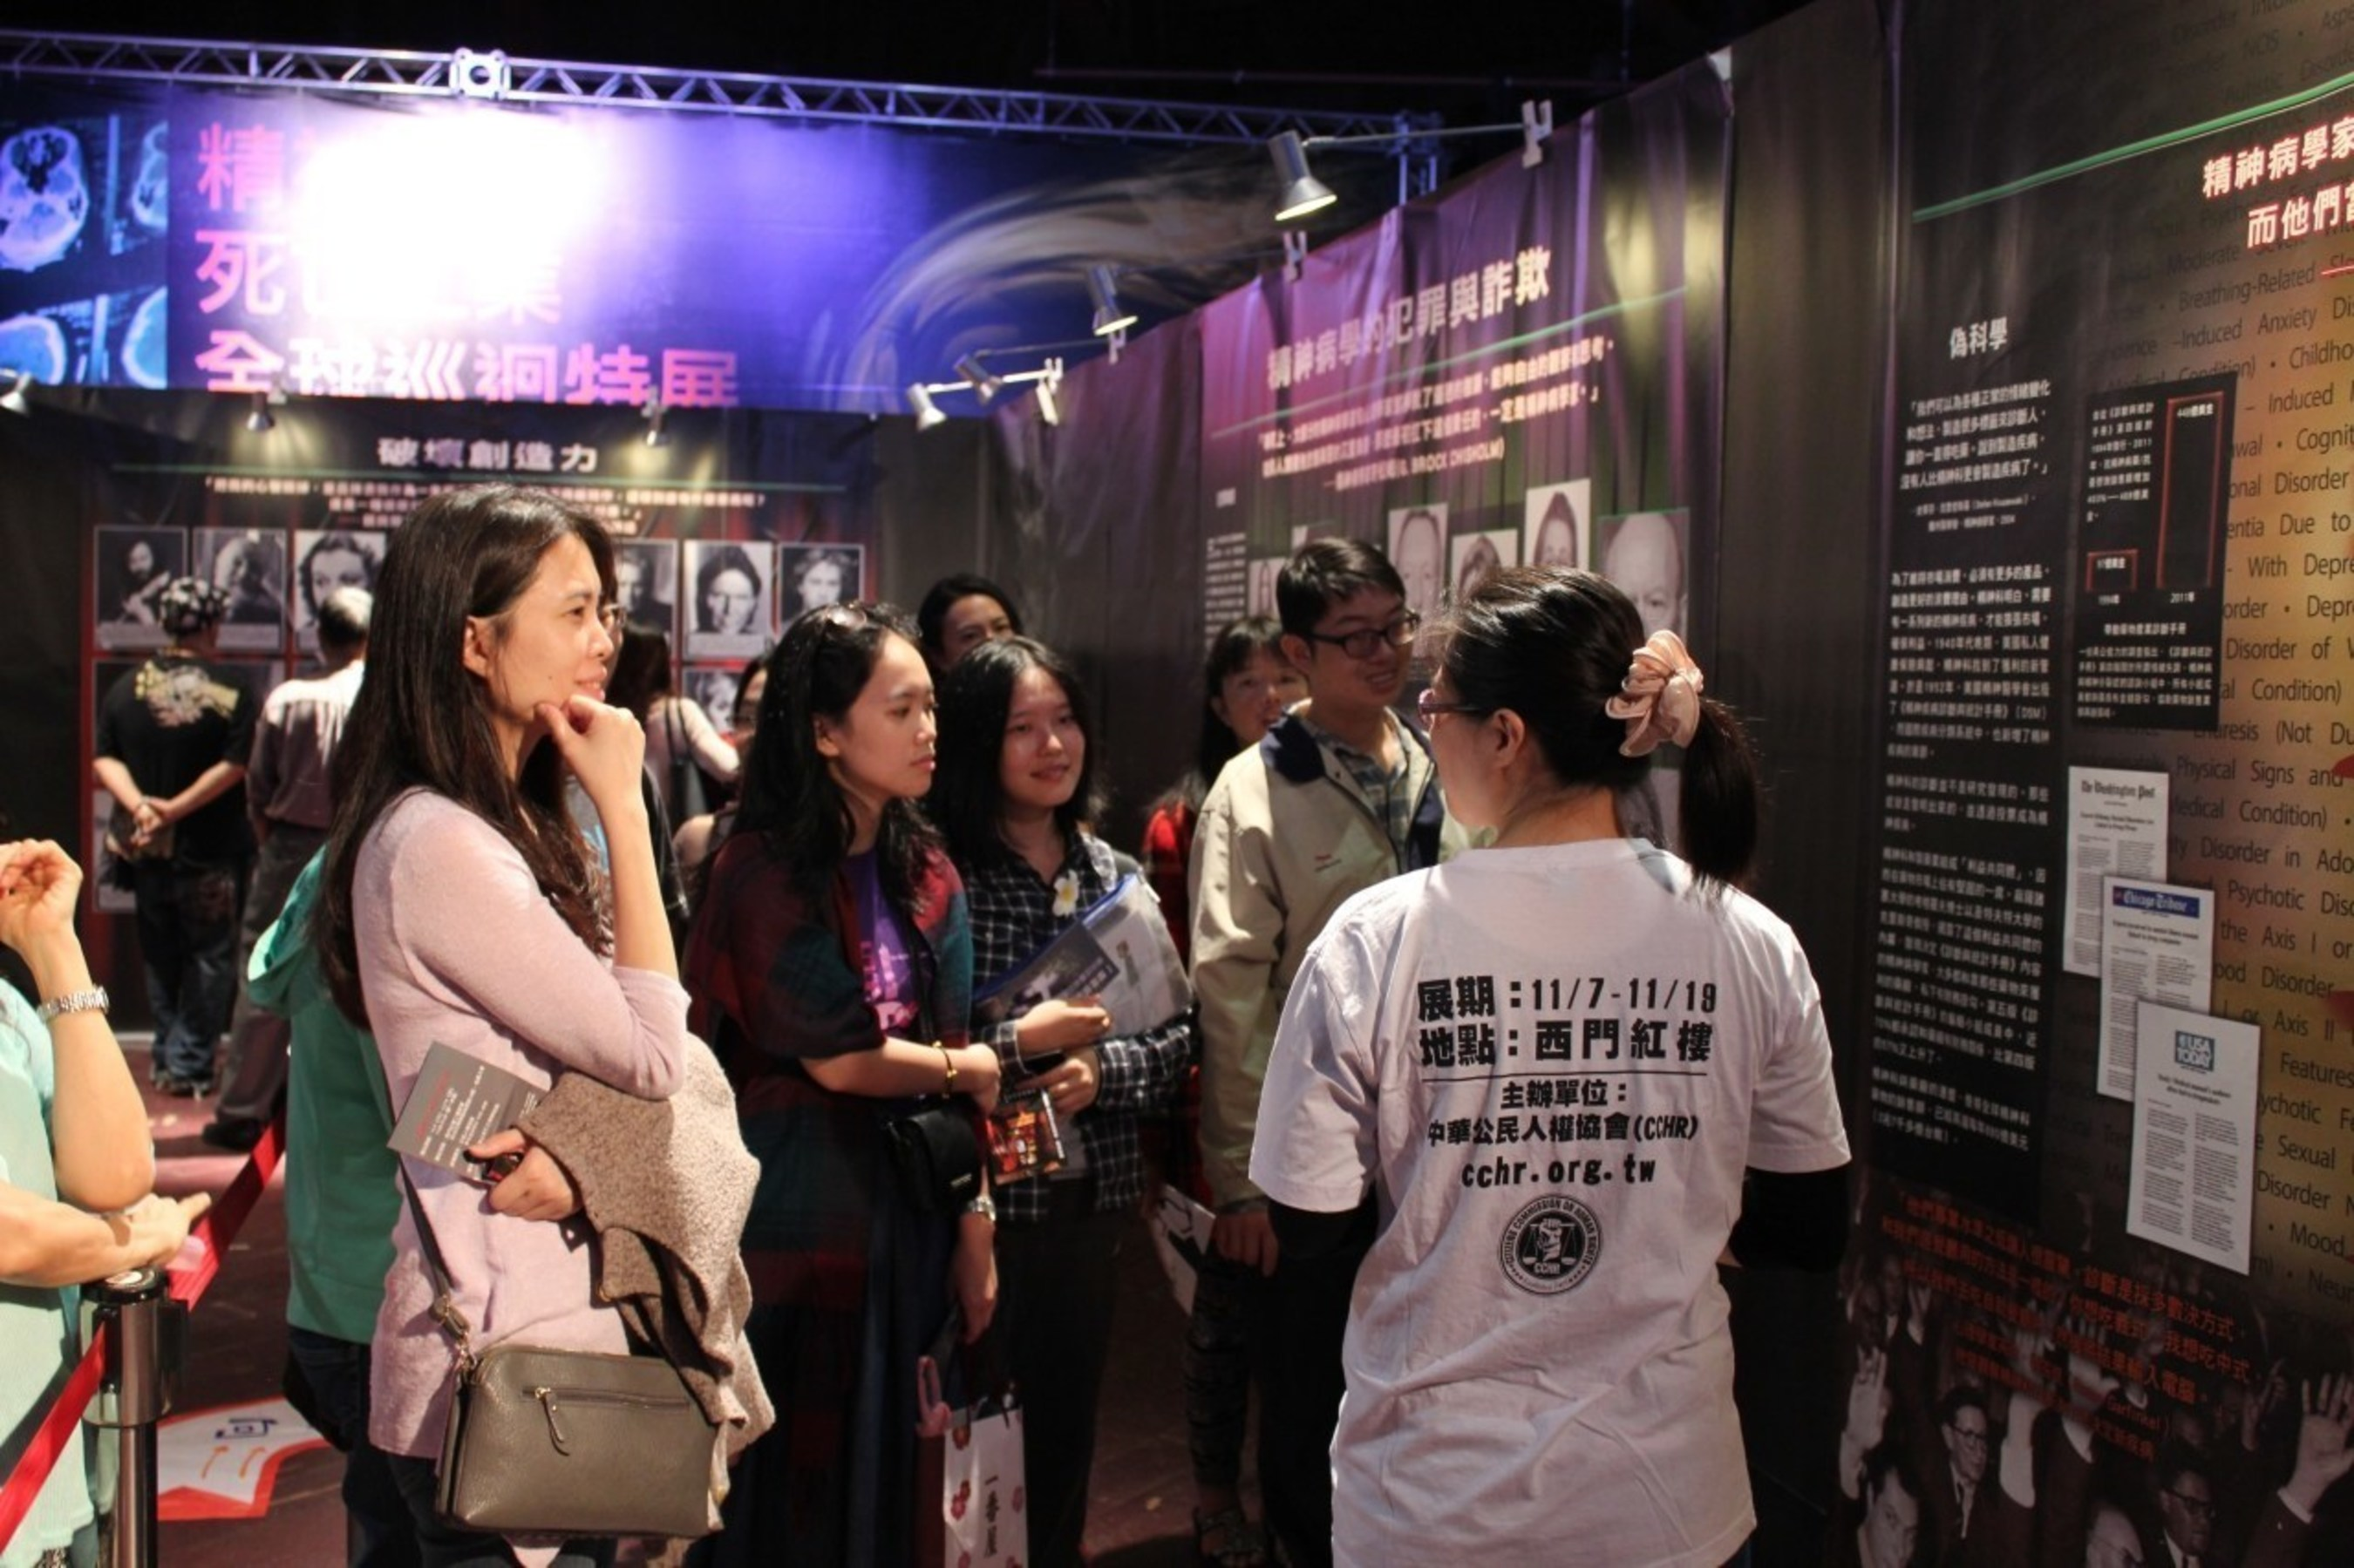 20,000 Attendees Are Informed of the Truth About Psychiatry at Exhibition in Taiwan